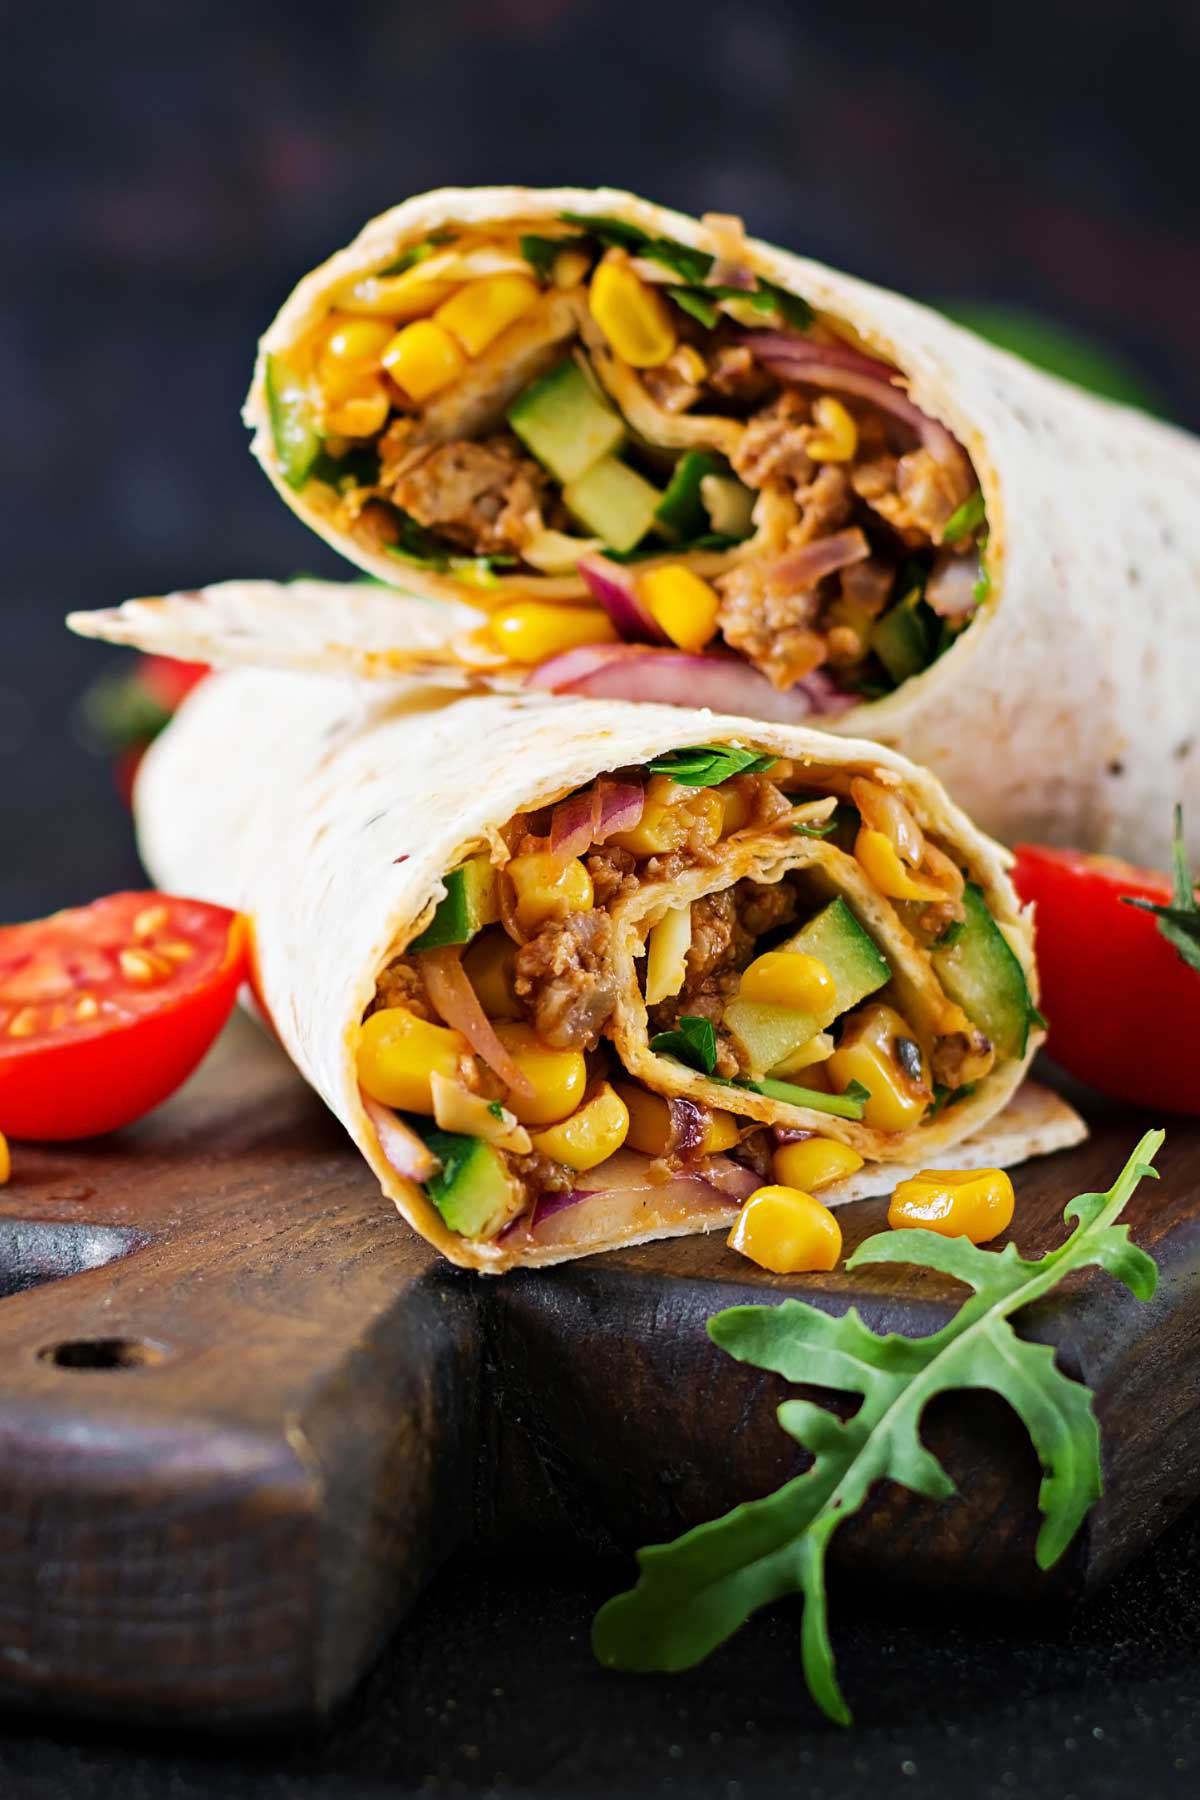 Cooking Frozen Burrito in Air Fryer is the easiest way for a perfect lunch, dinner, or even breakfast. These air fryer frozen burritos are soft and flavorful on the inside and crispy on the outside. You can use this method to cook chimichanga too! Keep some frozen burritos in the freezer and you can satisfy your Mexican food cravings at any time!